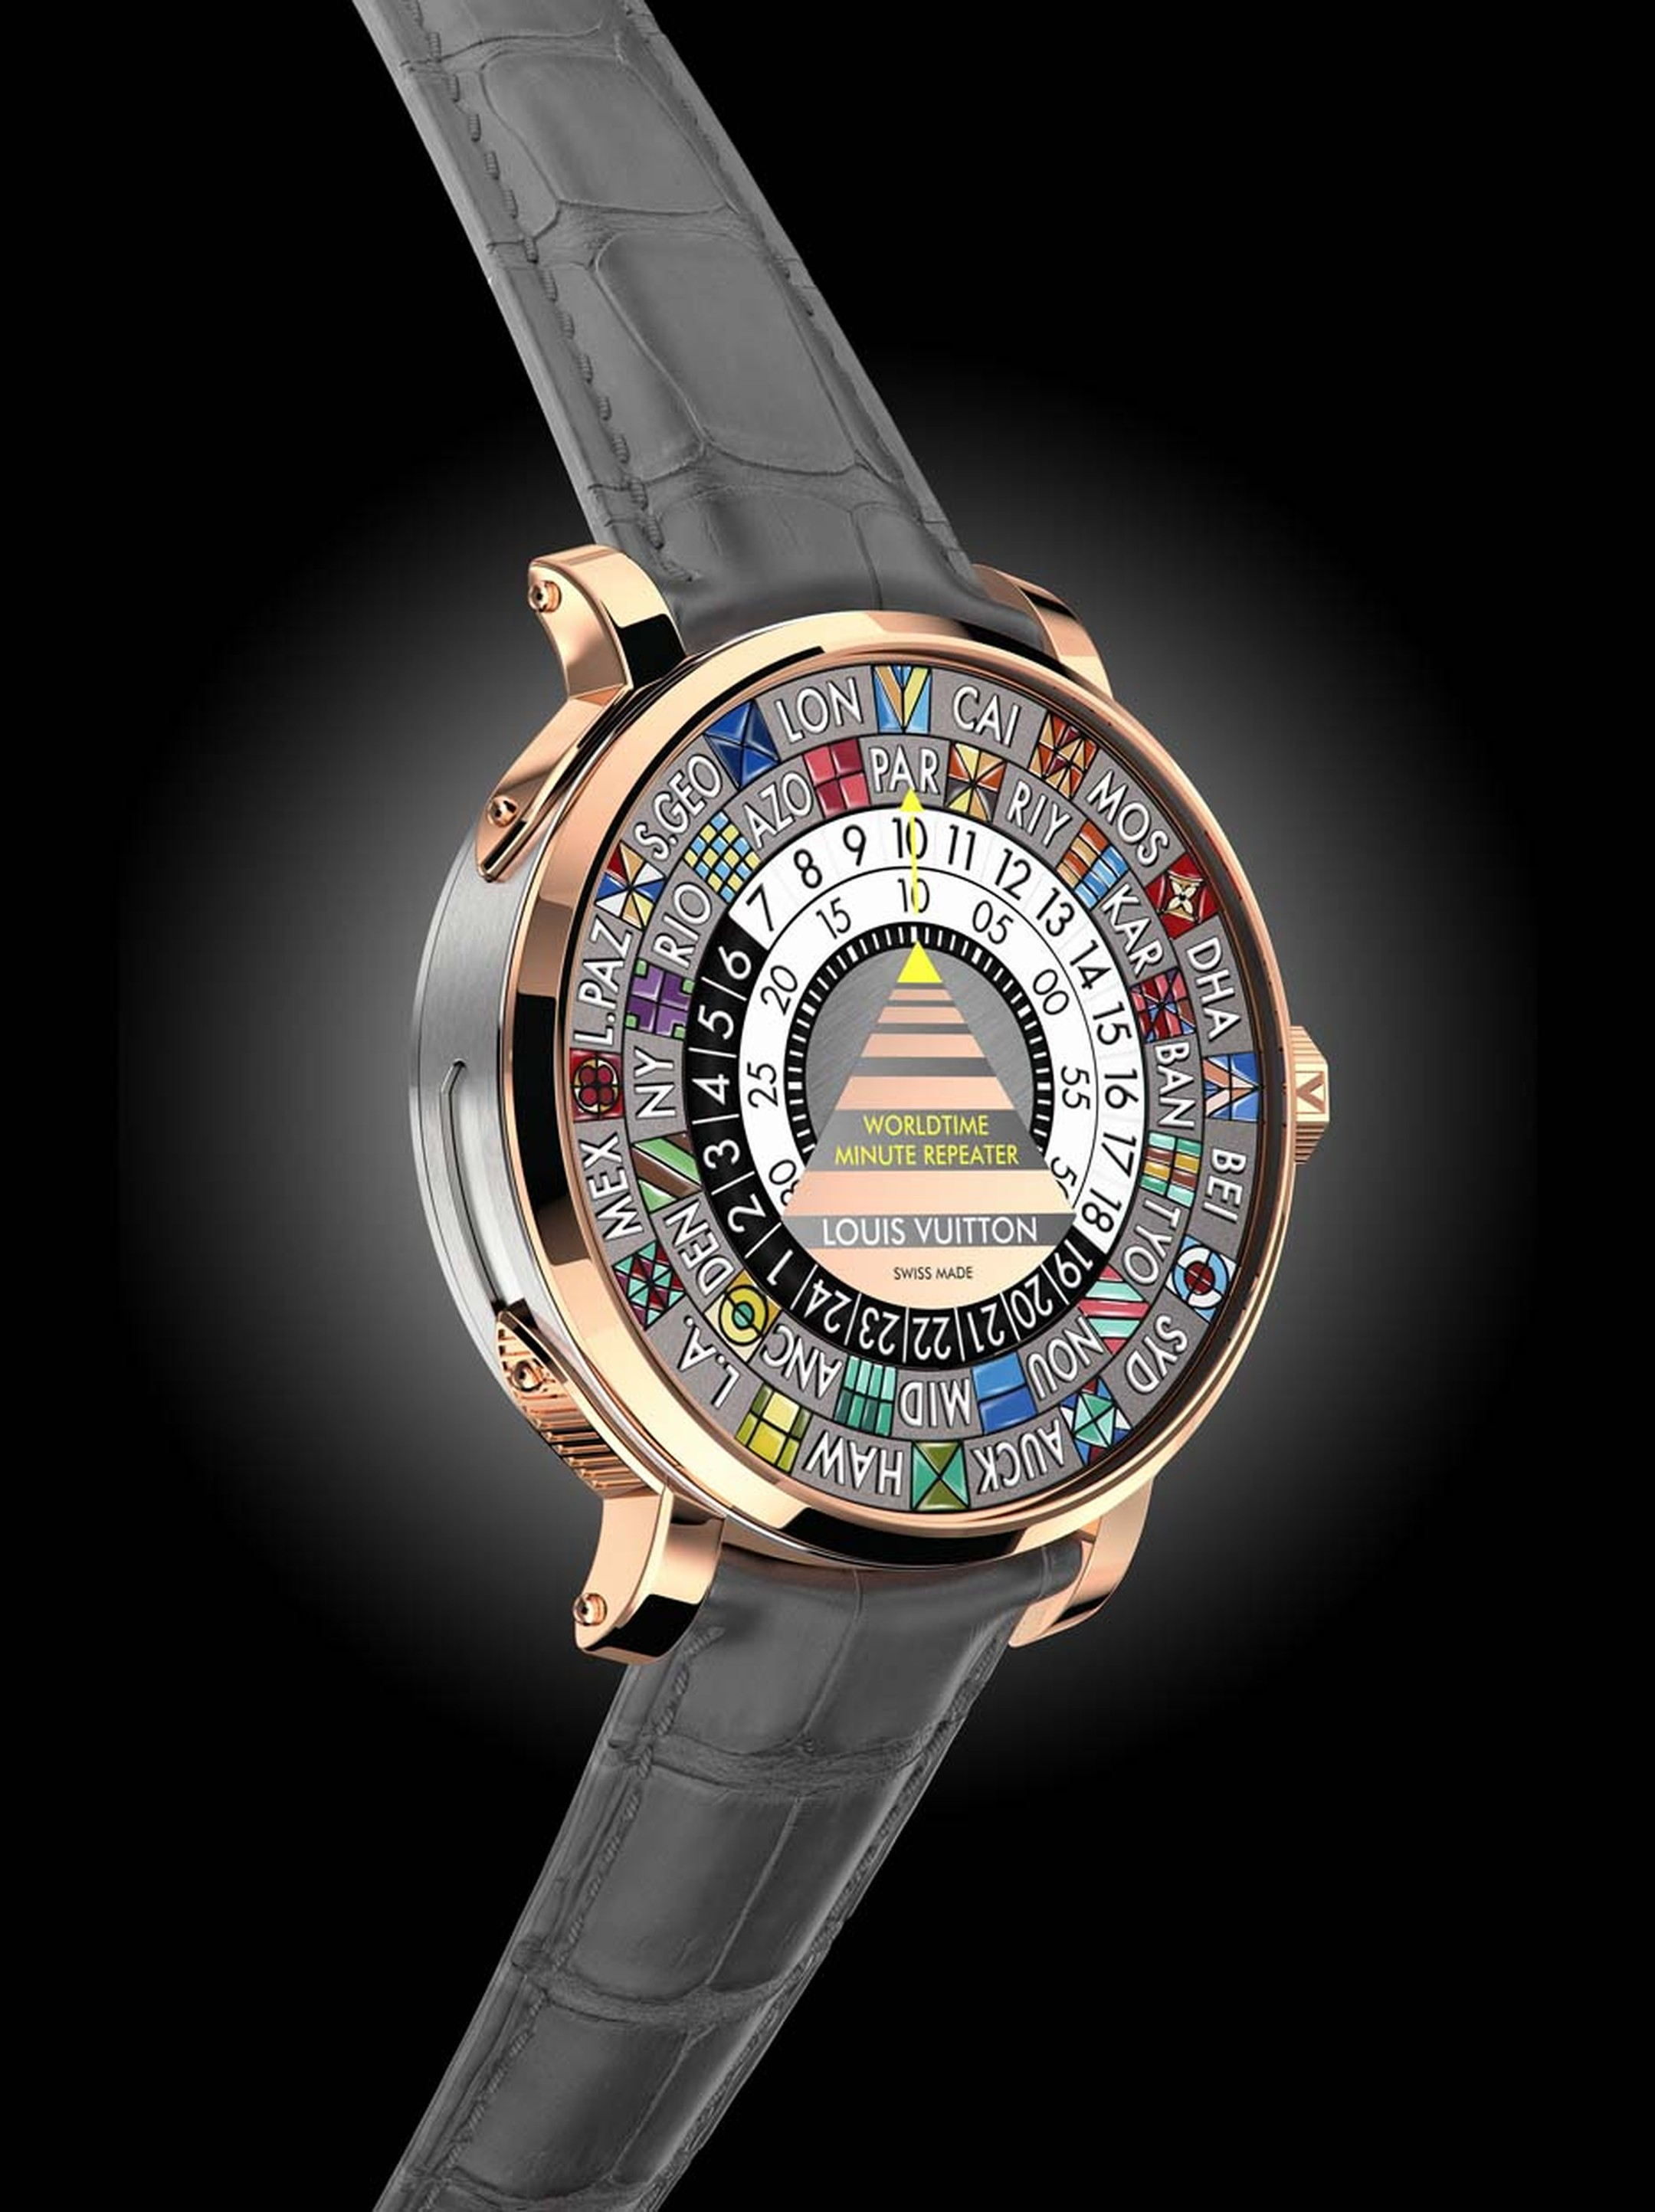 Louis Vuitton_Escale Worldtime Minute Repeater_watch side black bground 2.jpg